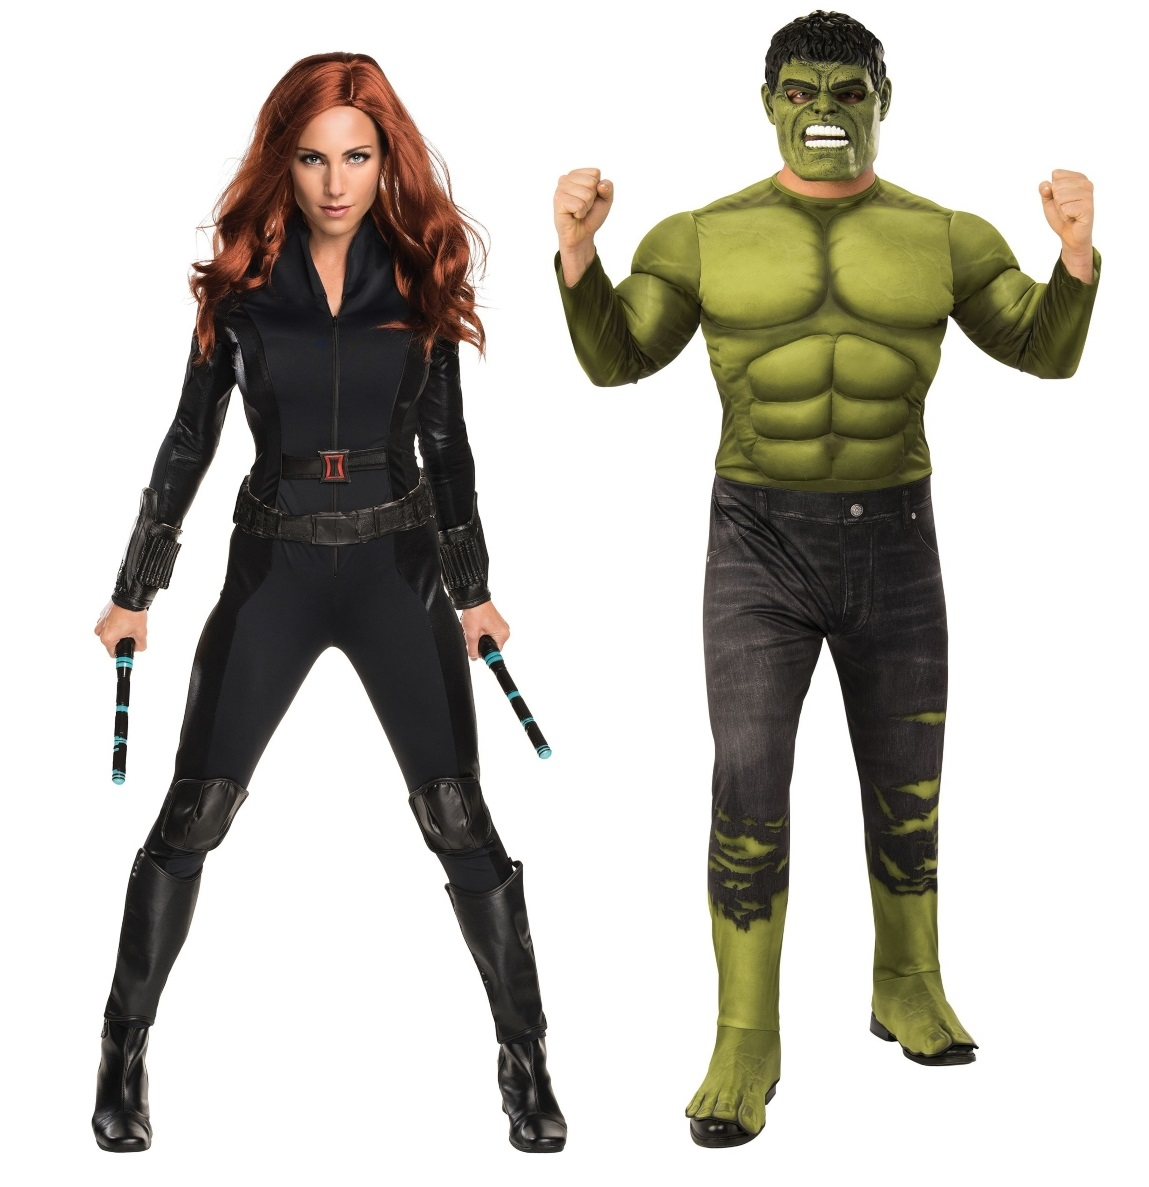 Black Widow and Hulk Couples Costumes